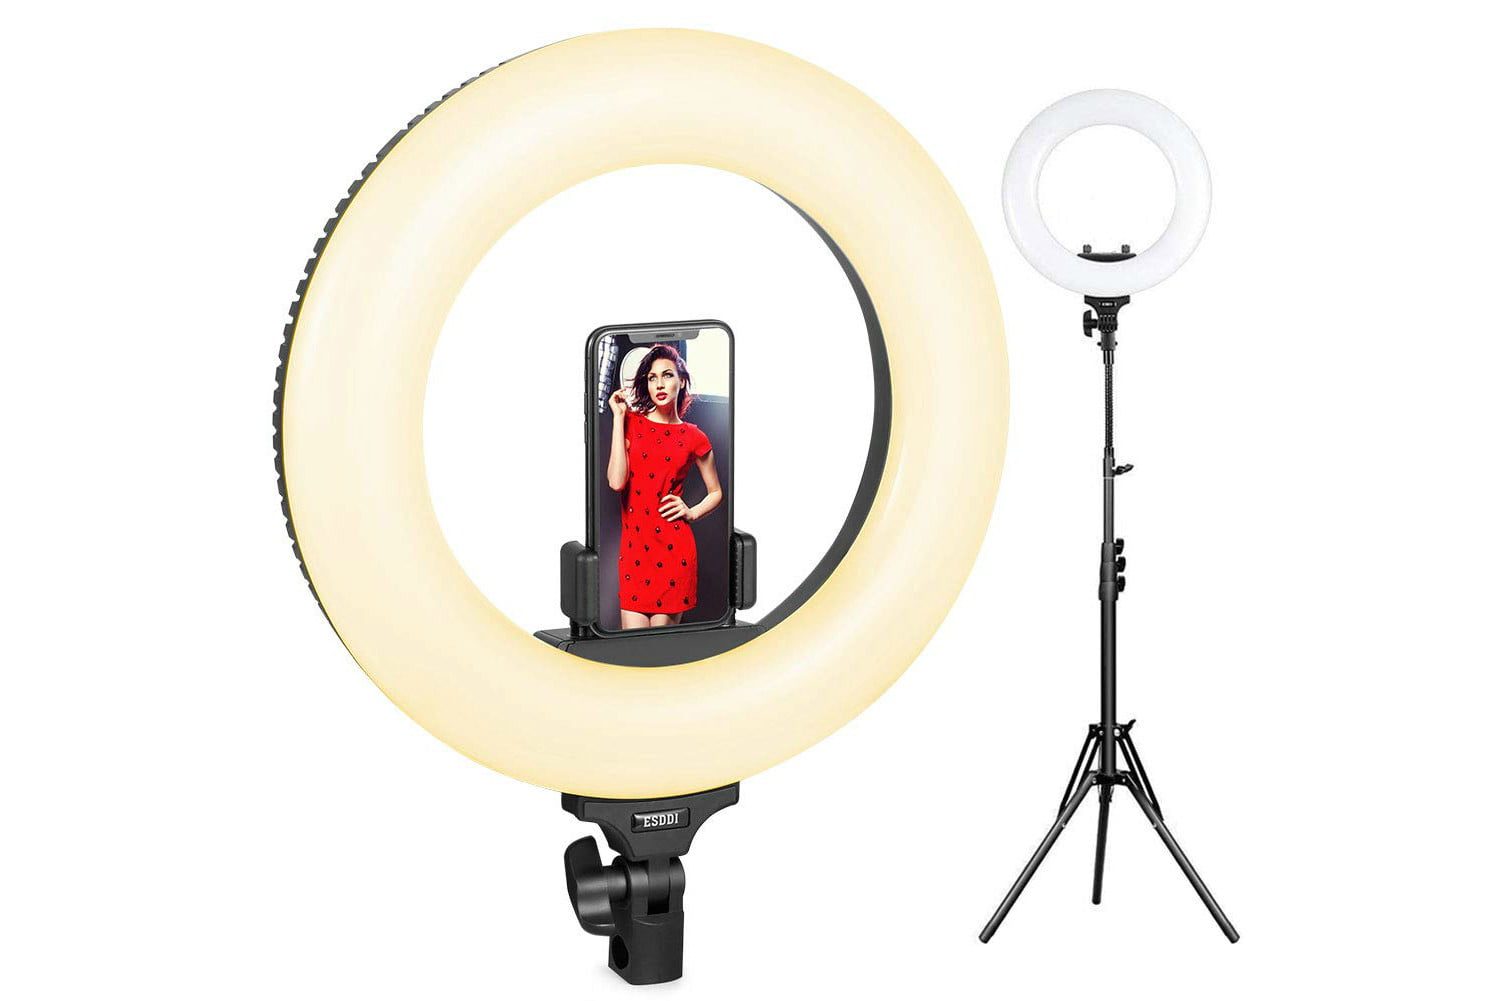 promo code saves 40 off ring light with stand and phone holder esddi 14inch outer adjustable color temperature 3200k 5600k 1